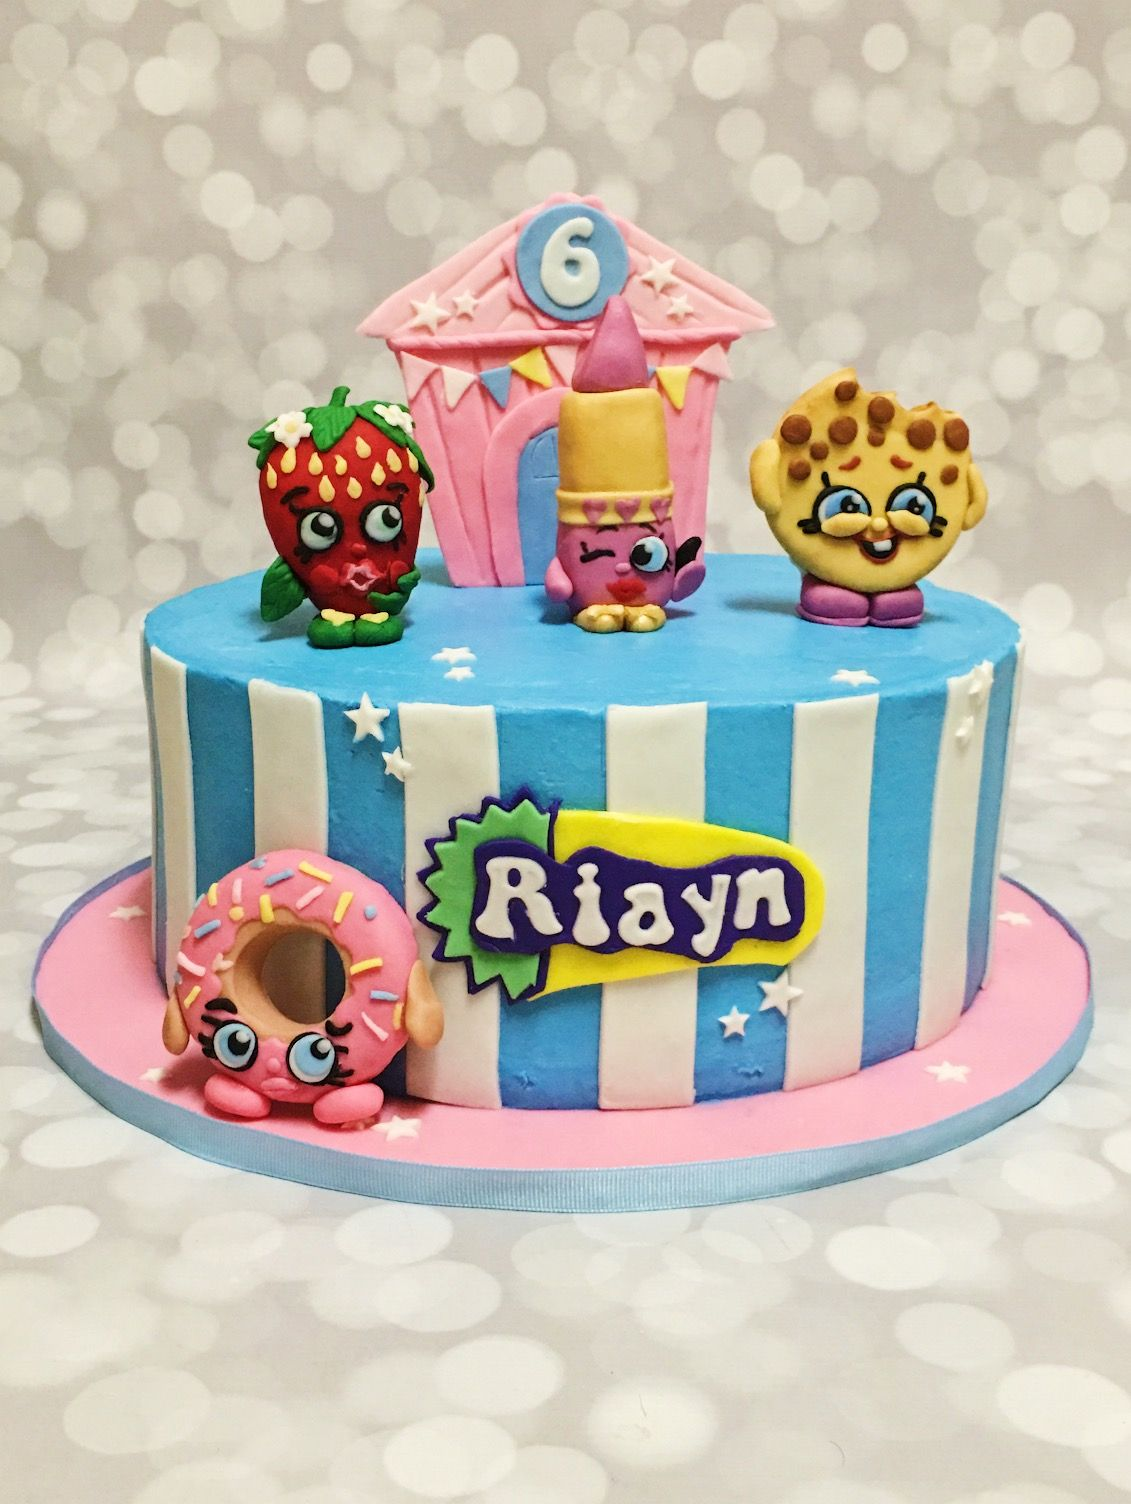 Custom Shopkins Cake By A Little Slice Of Heaven Bakery In Atlanta GA Birthday